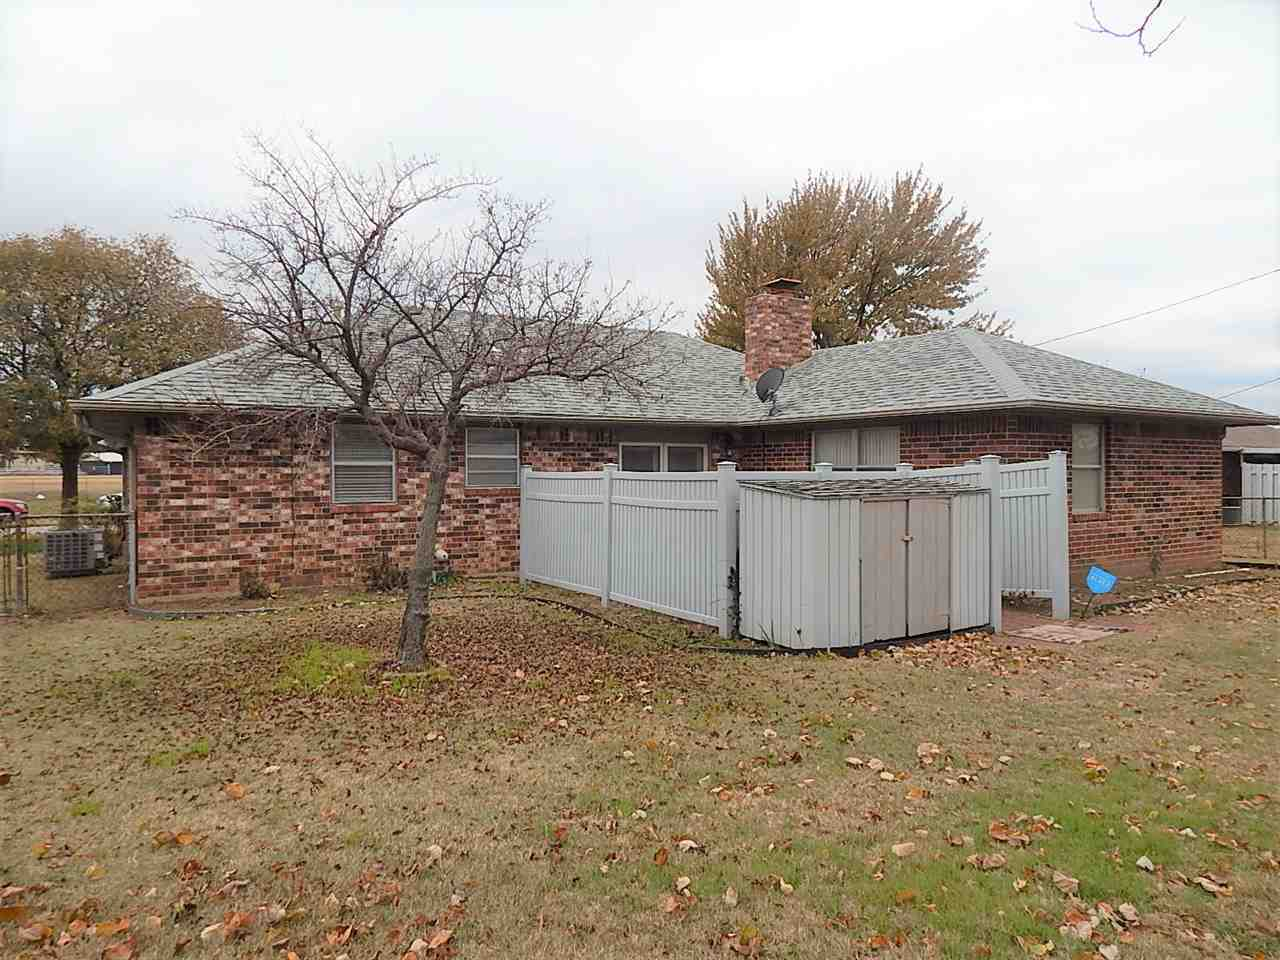 Sold Cross Sale W/ MLS | 1305 W Chestnut  Ponca City, OK 74601 12